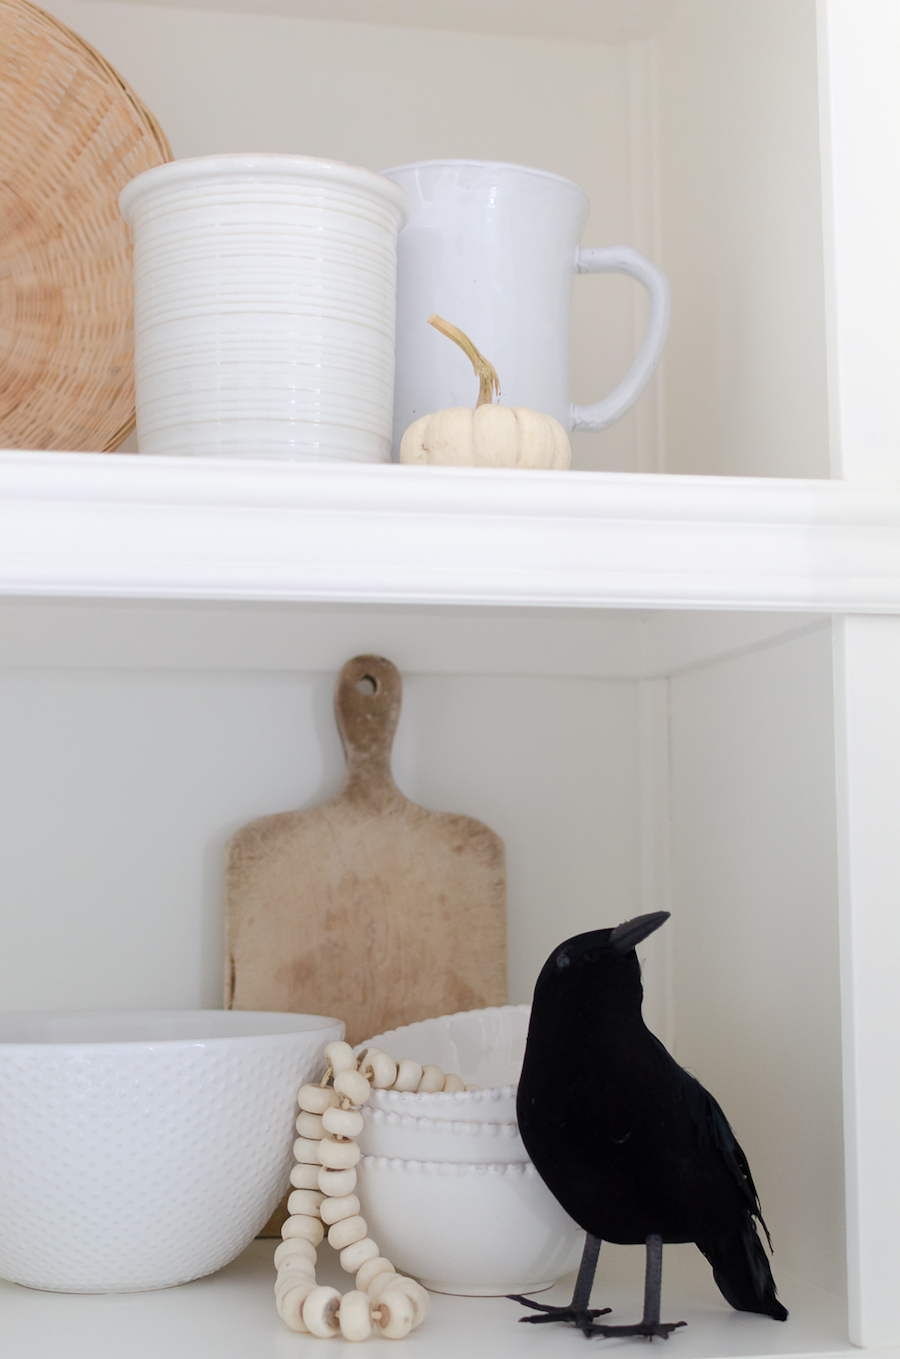 Halloween Decor Ideas Kitchen Shelving